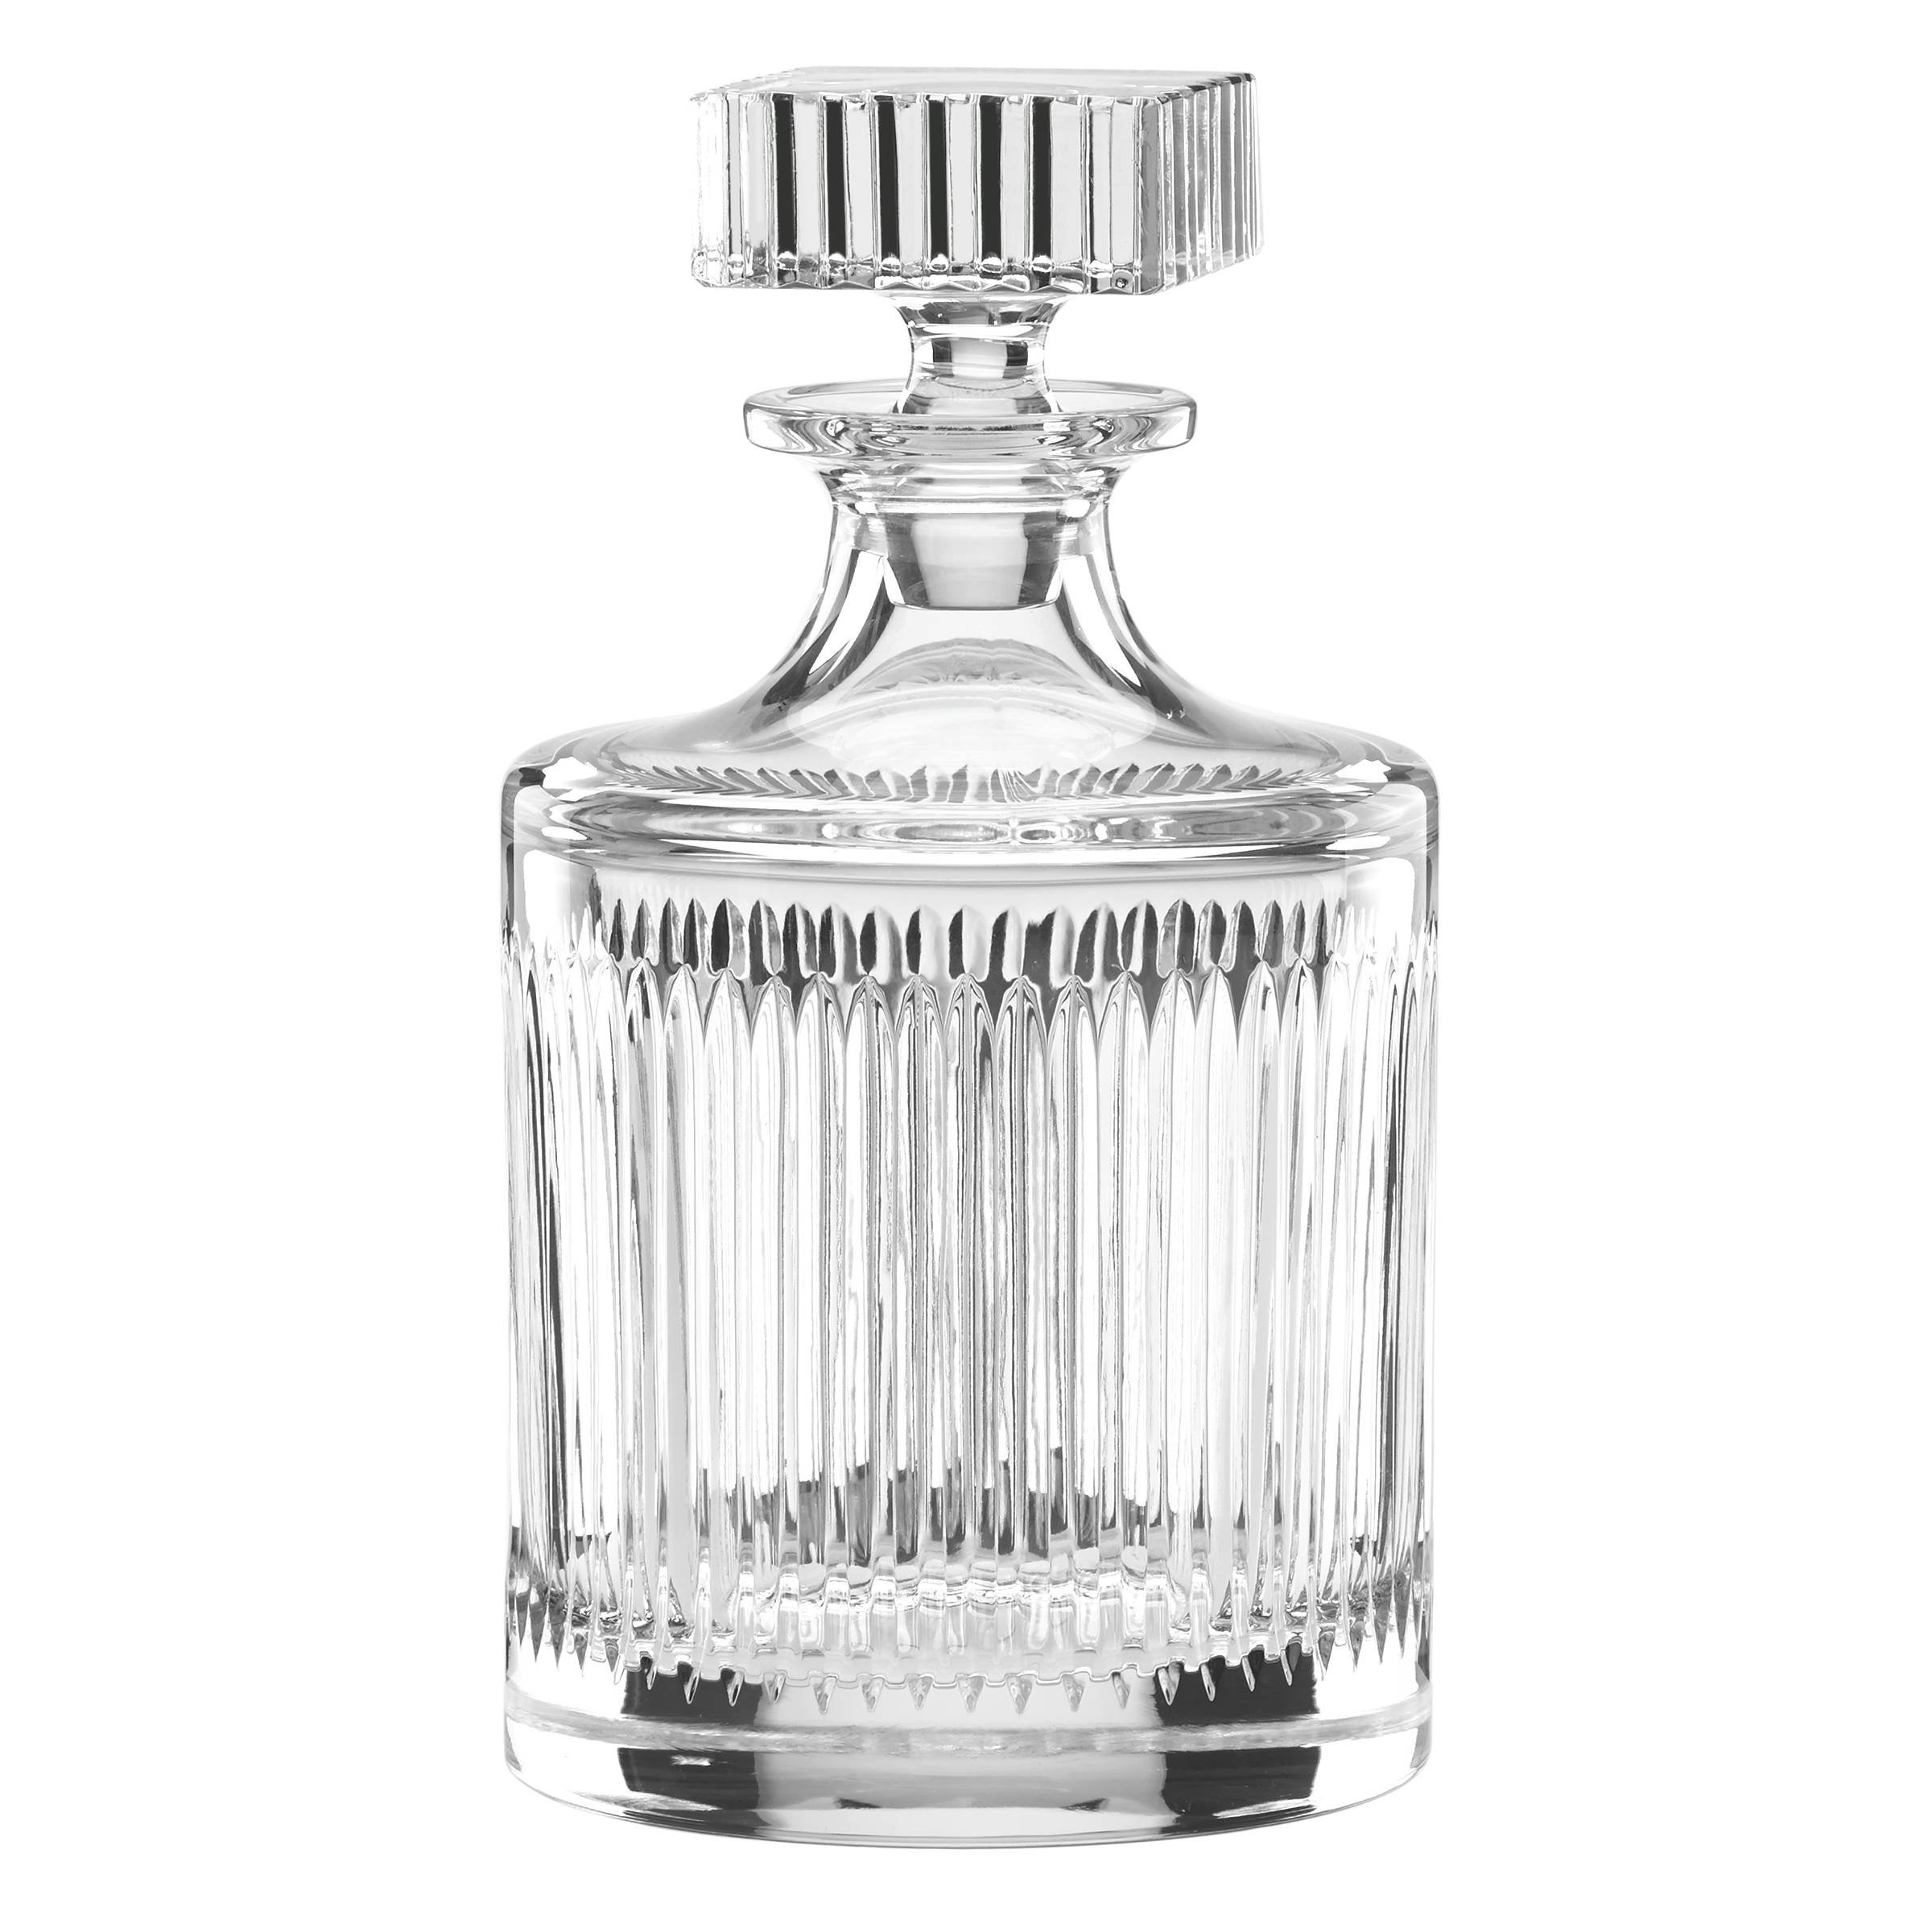 Reed & Barton, Thomas O'Brien New Vintage Hanson Crystal Decanter 871743 32 oz. by Reed & Barton (Image #1)